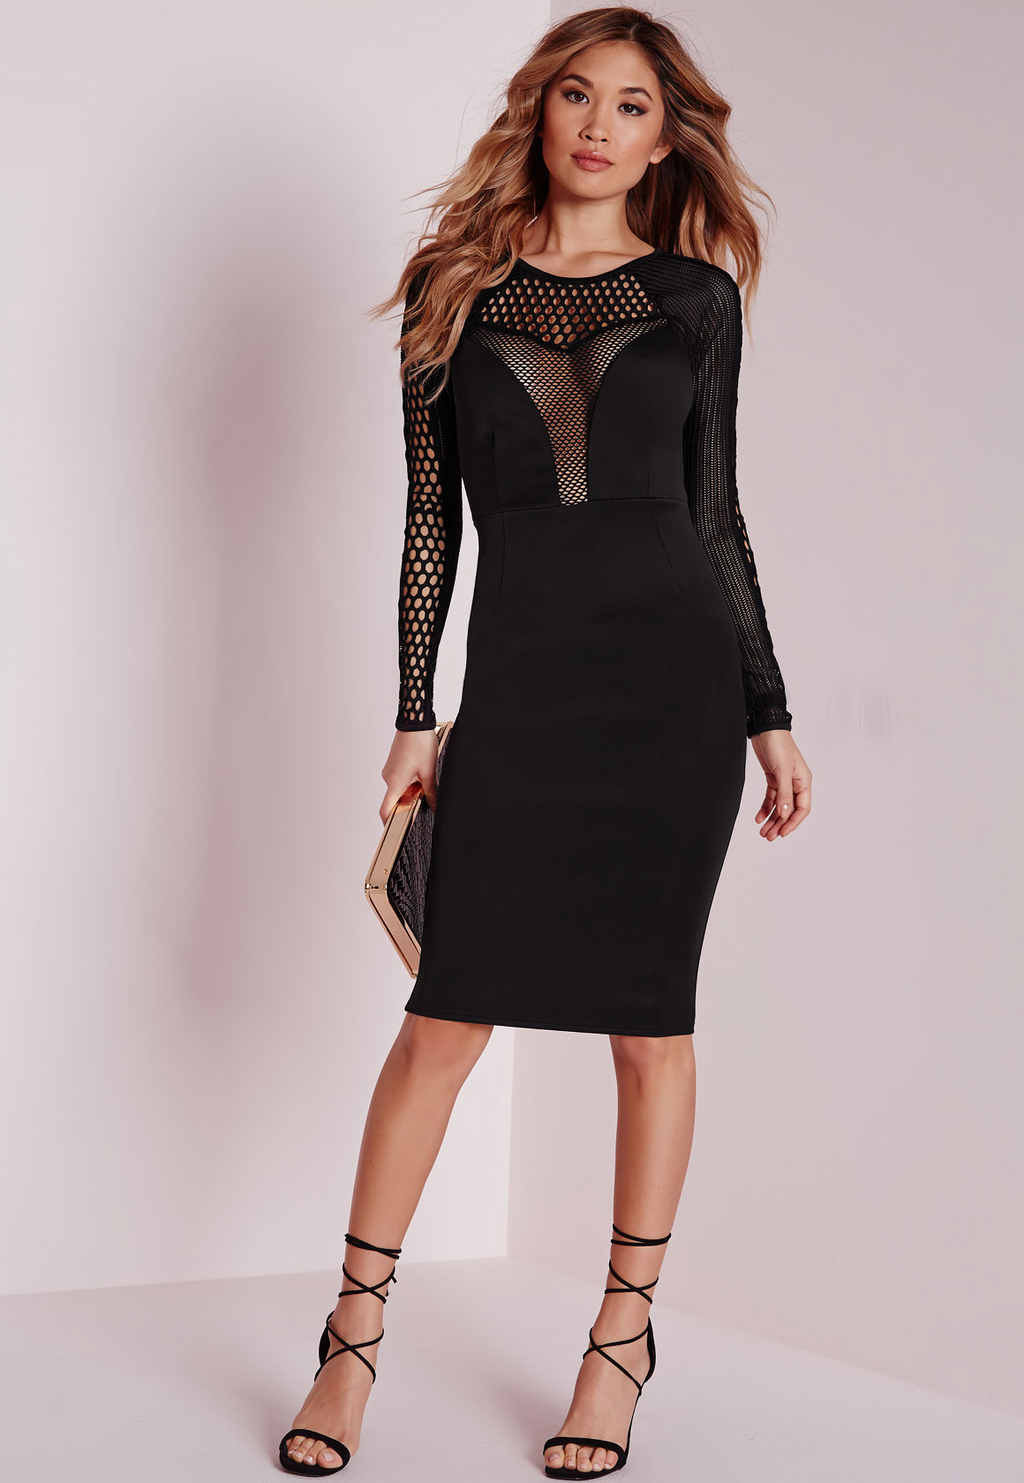 Mesh Insert Long Sleeve Midi Dress Black, Black - length: below the knee; neckline: round neck; fit: tight; pattern: plain; style: bodycon; bust detail: sheer at bust; predominant colour: black; occasions: evening; fibres: polyester/polyamide - stretch; sleeve length: long sleeve; sleeve style: standard; texture group: jersey - clingy; pattern type: fabric; season: a/w 2015; wardrobe: event